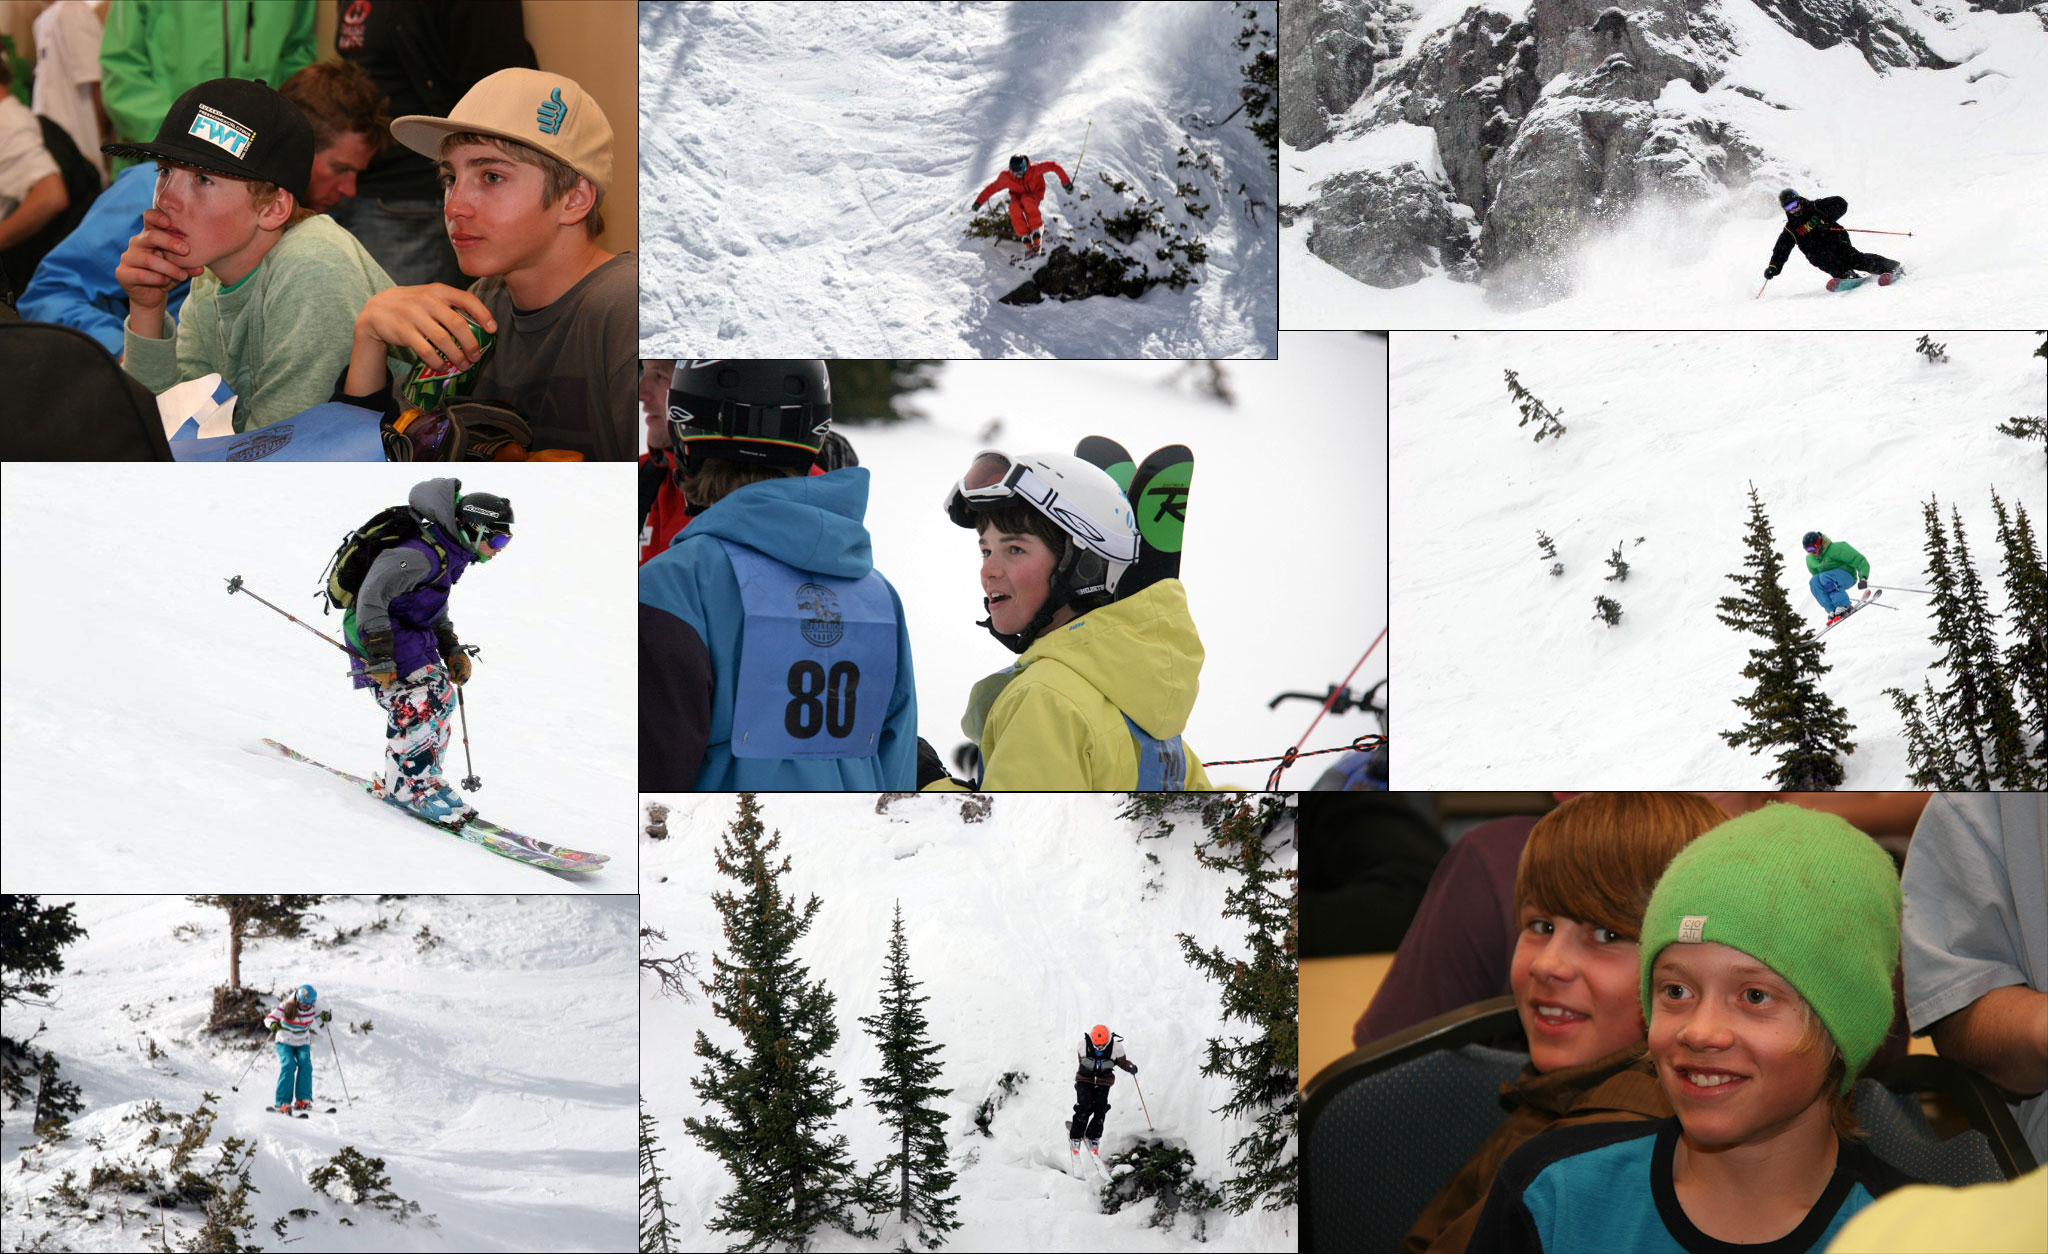 Faces of the Junior Freeride Tour, which ends for the season this weekend at Snowbird, Utah.